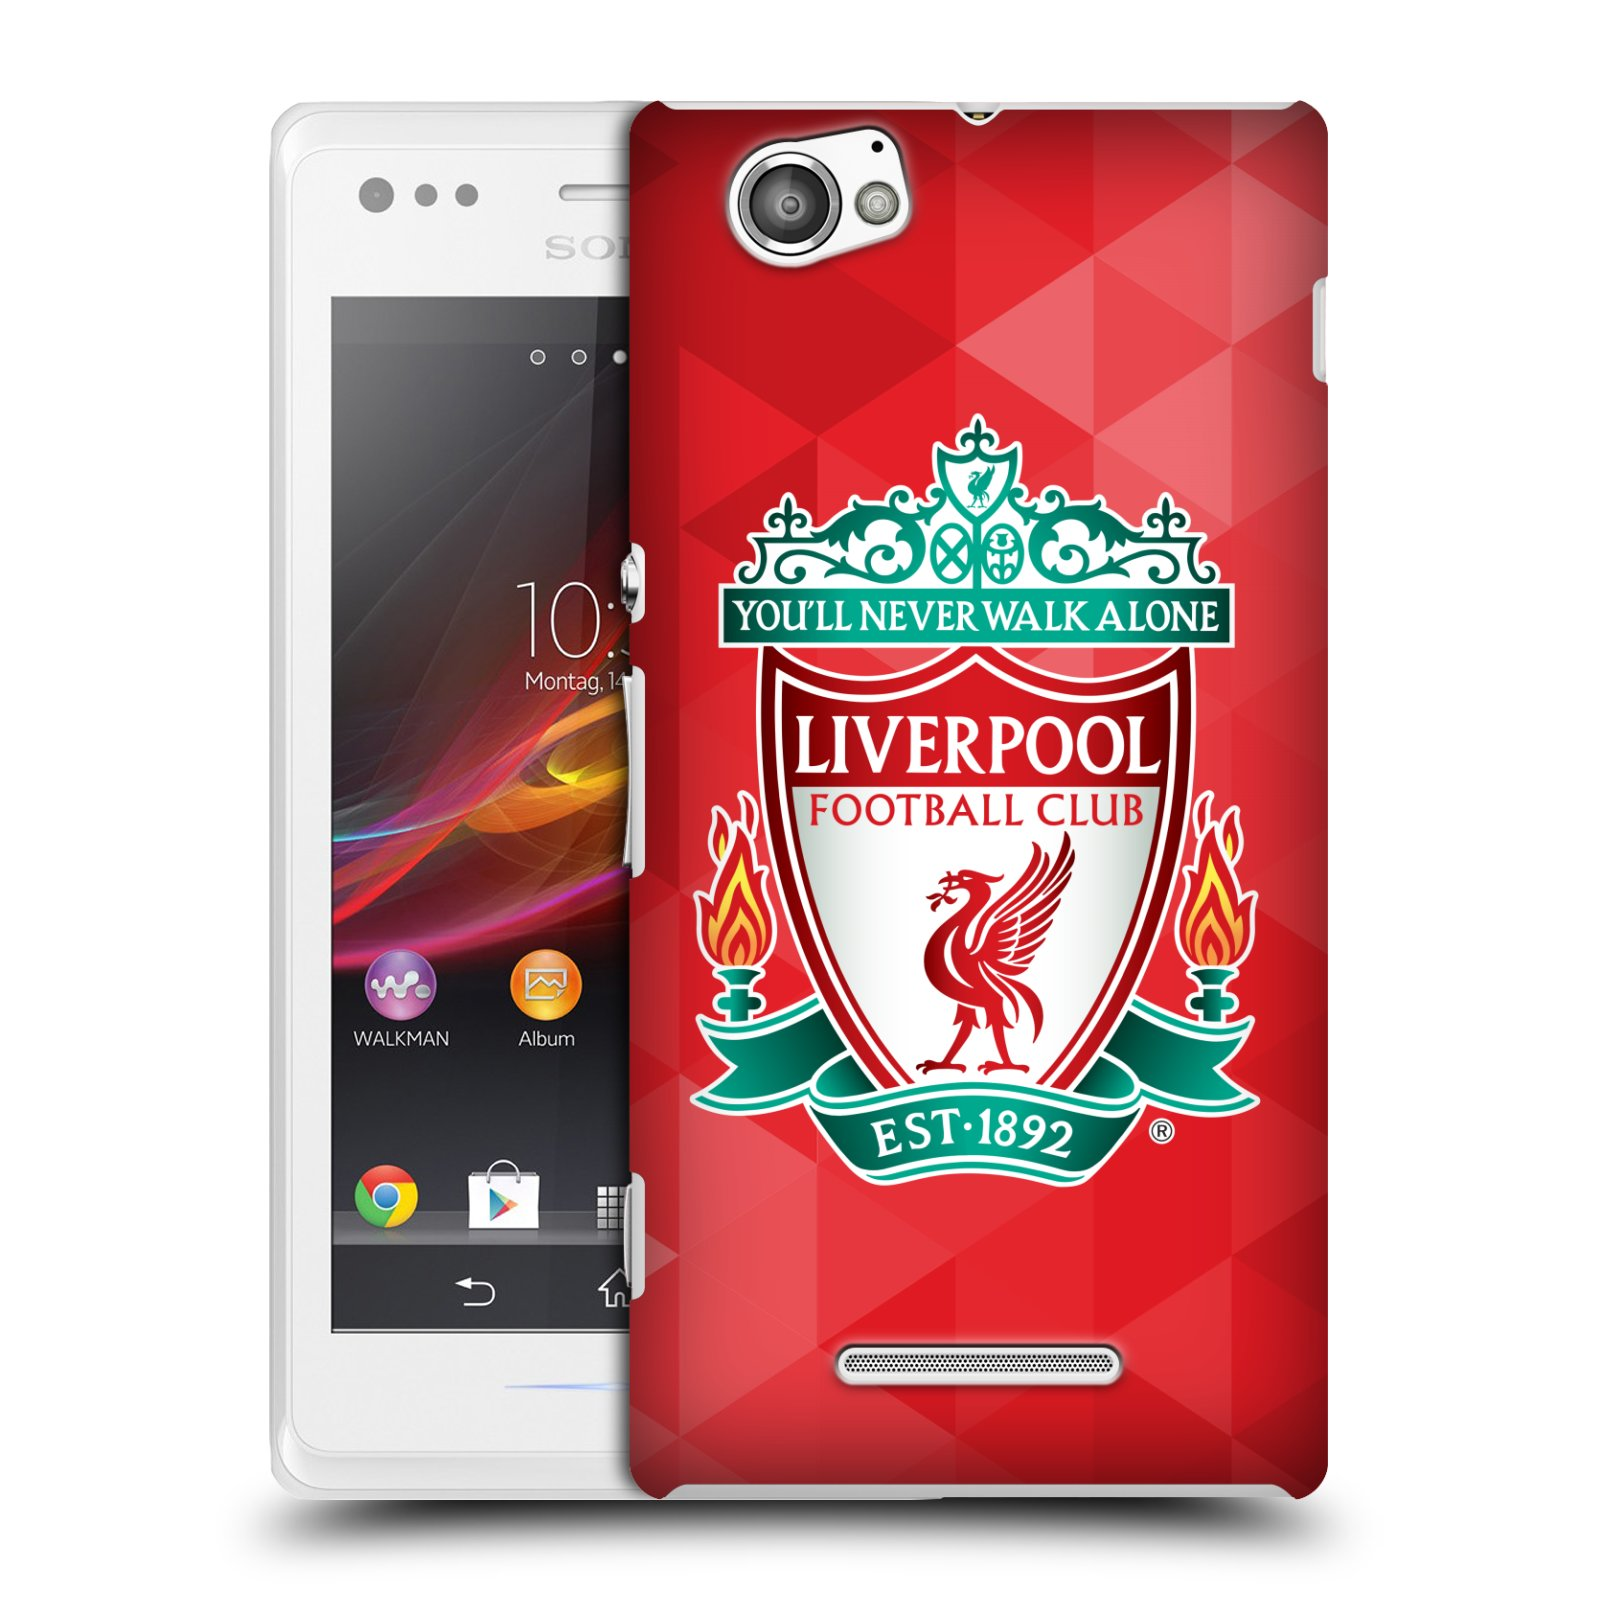 Plastové pouzdro na mobil Sony Xperia M C1905 HEAD CASE ZNAK LIVERPOOL FC OFFICIAL GEOMETRIC RED